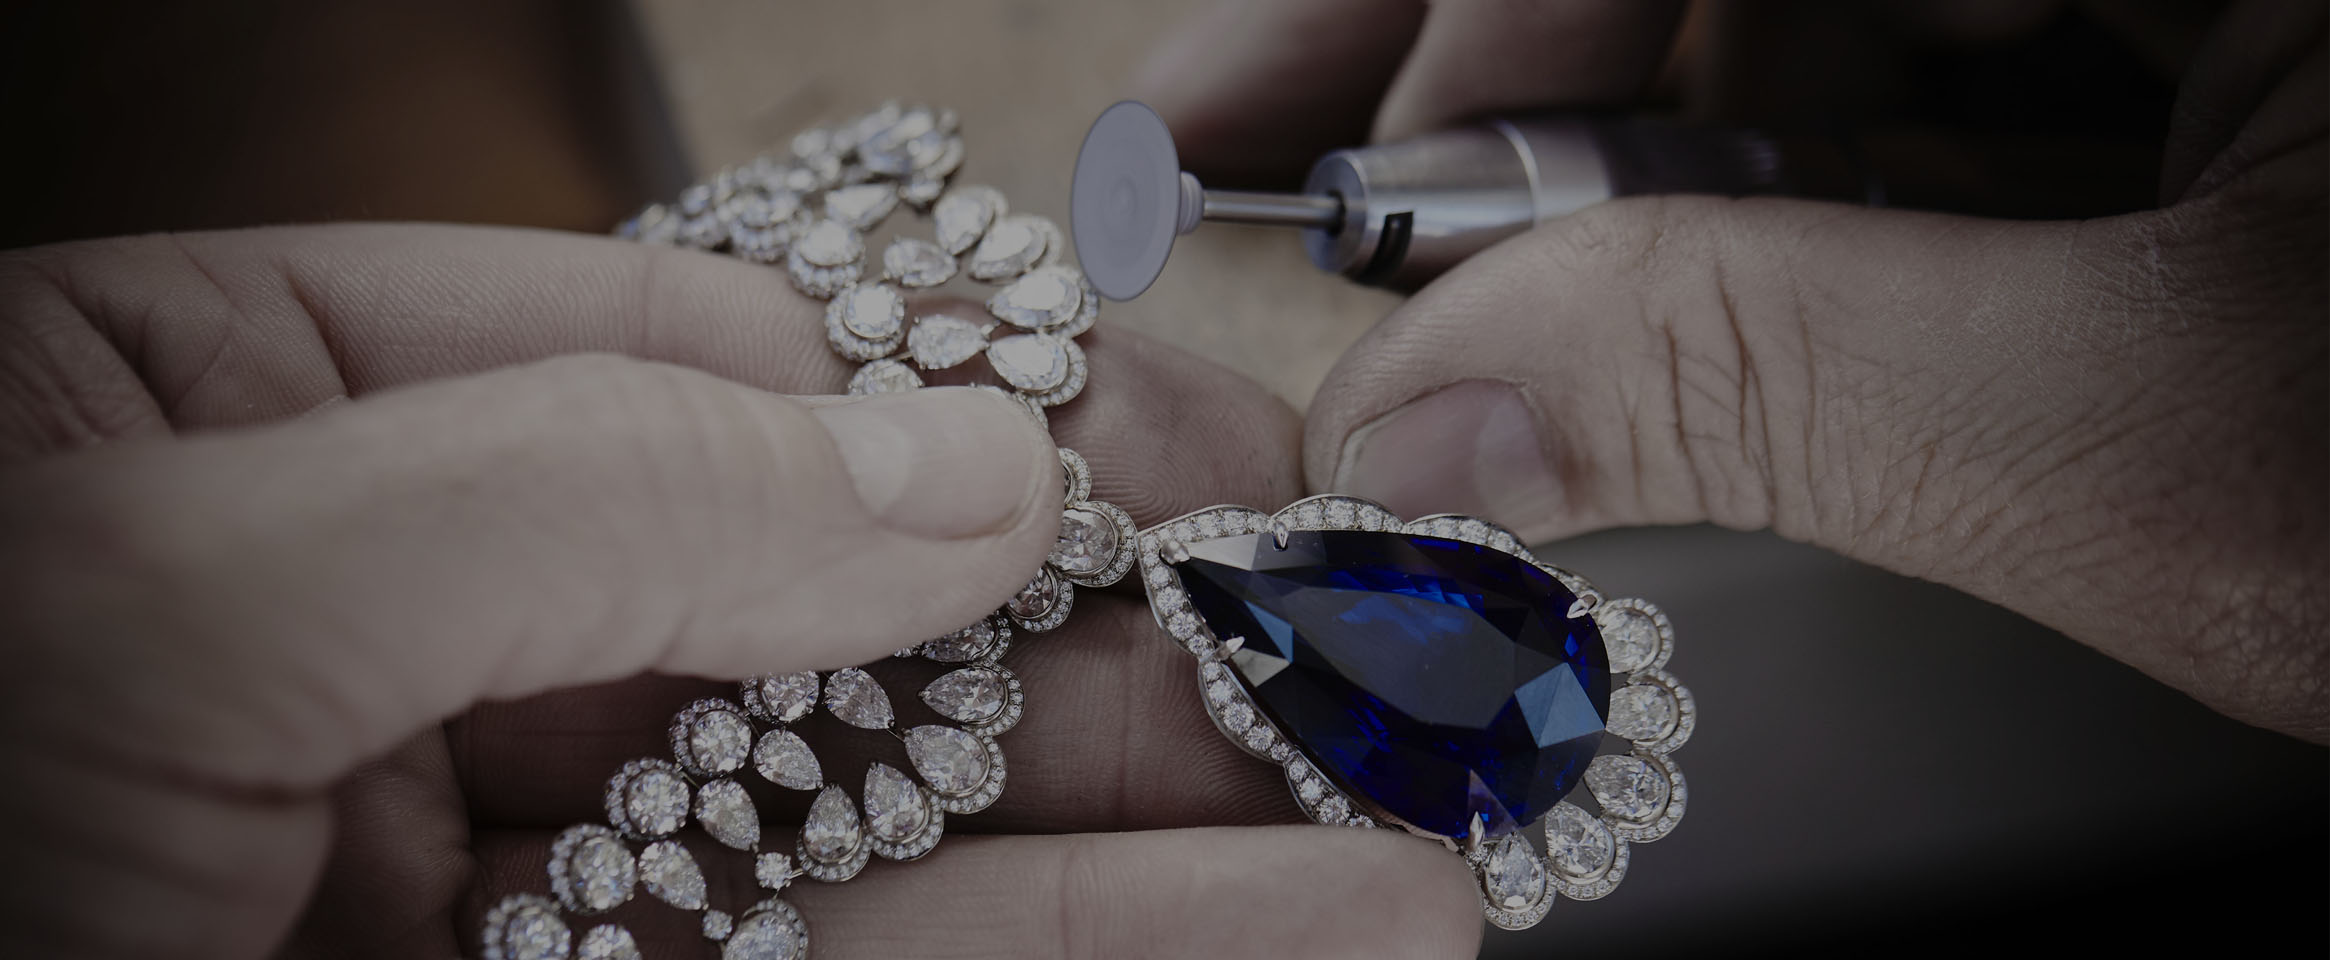 Image of artisan polishing Diamond and Sapphire necklace